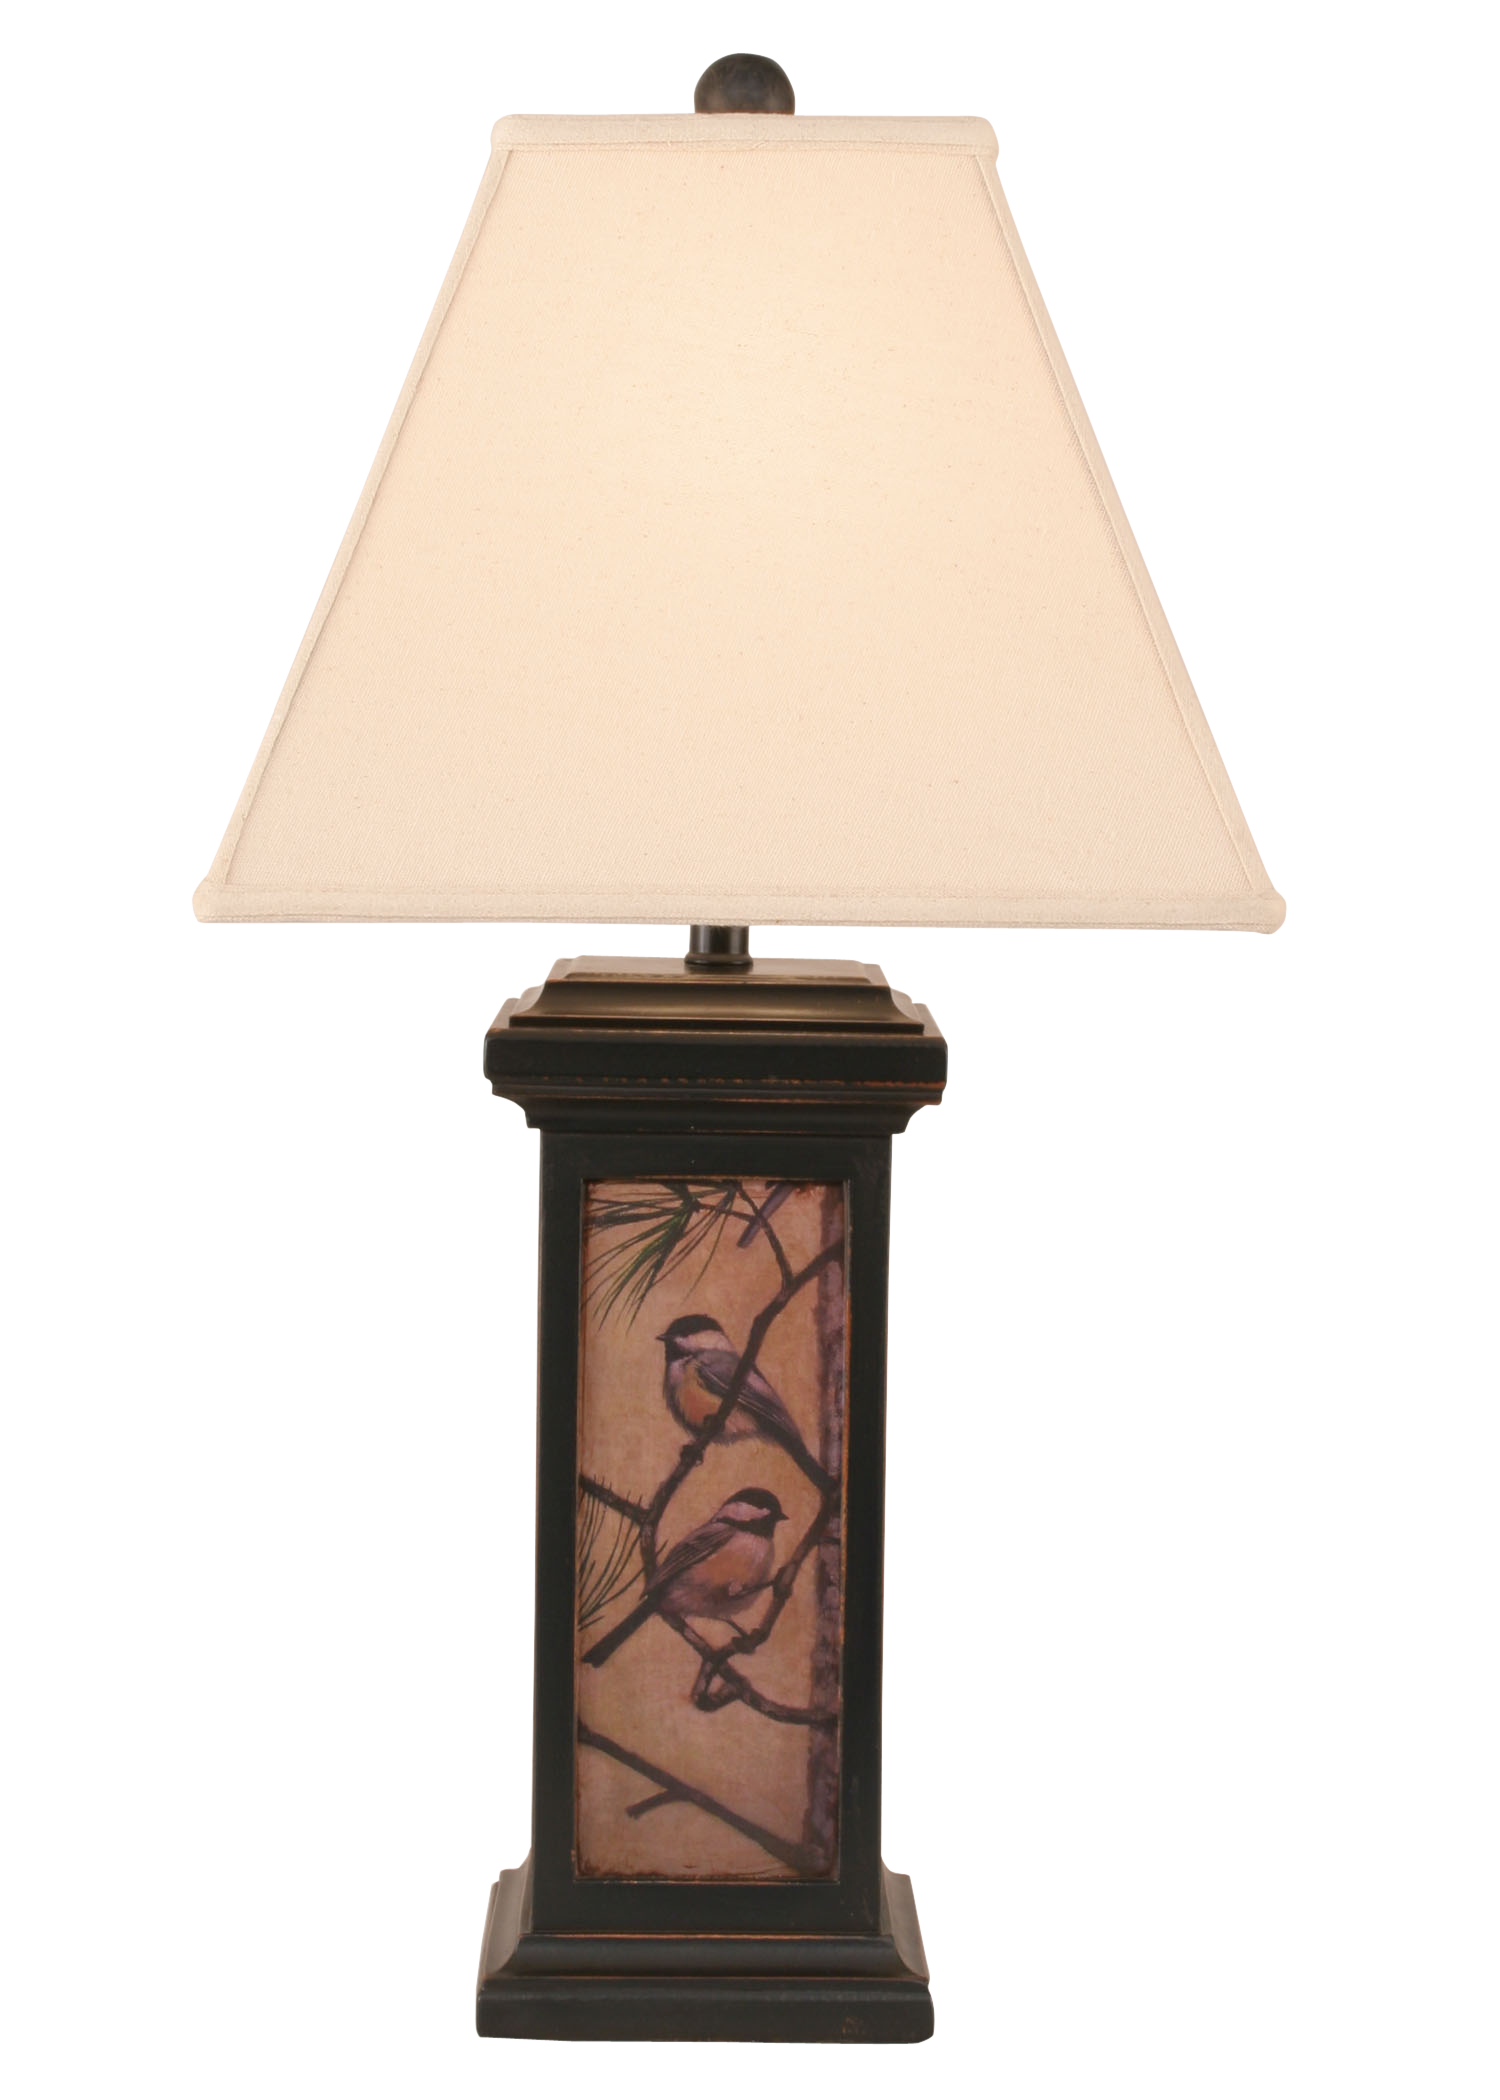 Distressed Black Small Square Chickadee Scene Table Lamp - Coast Lamp Shop